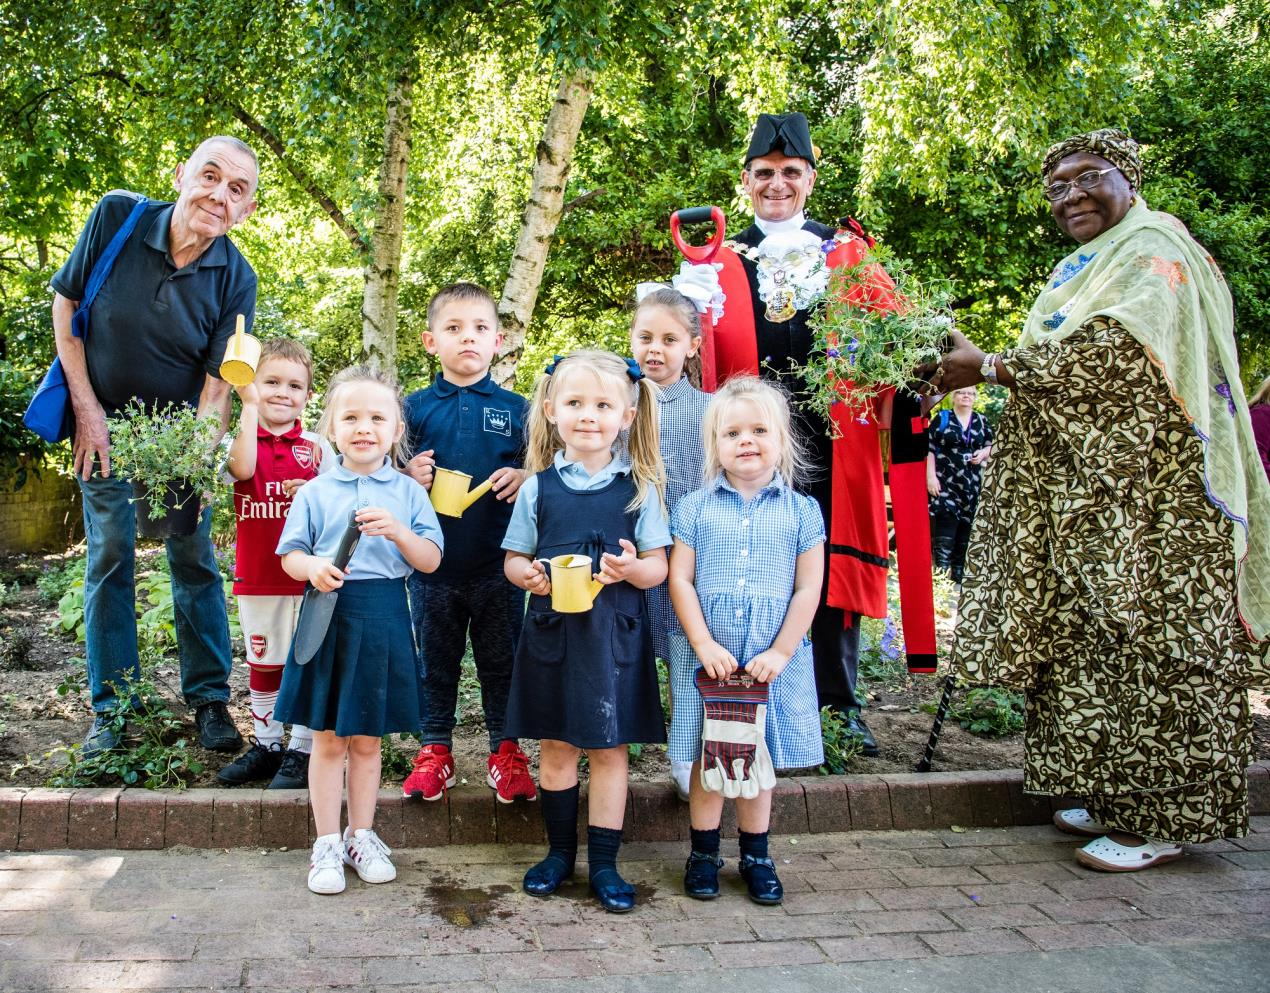 Local residents with Cllr Dave Poyser, the Mayor of Islington, at the launch of Islington's new Word Garden, part of the Word2018 Festival